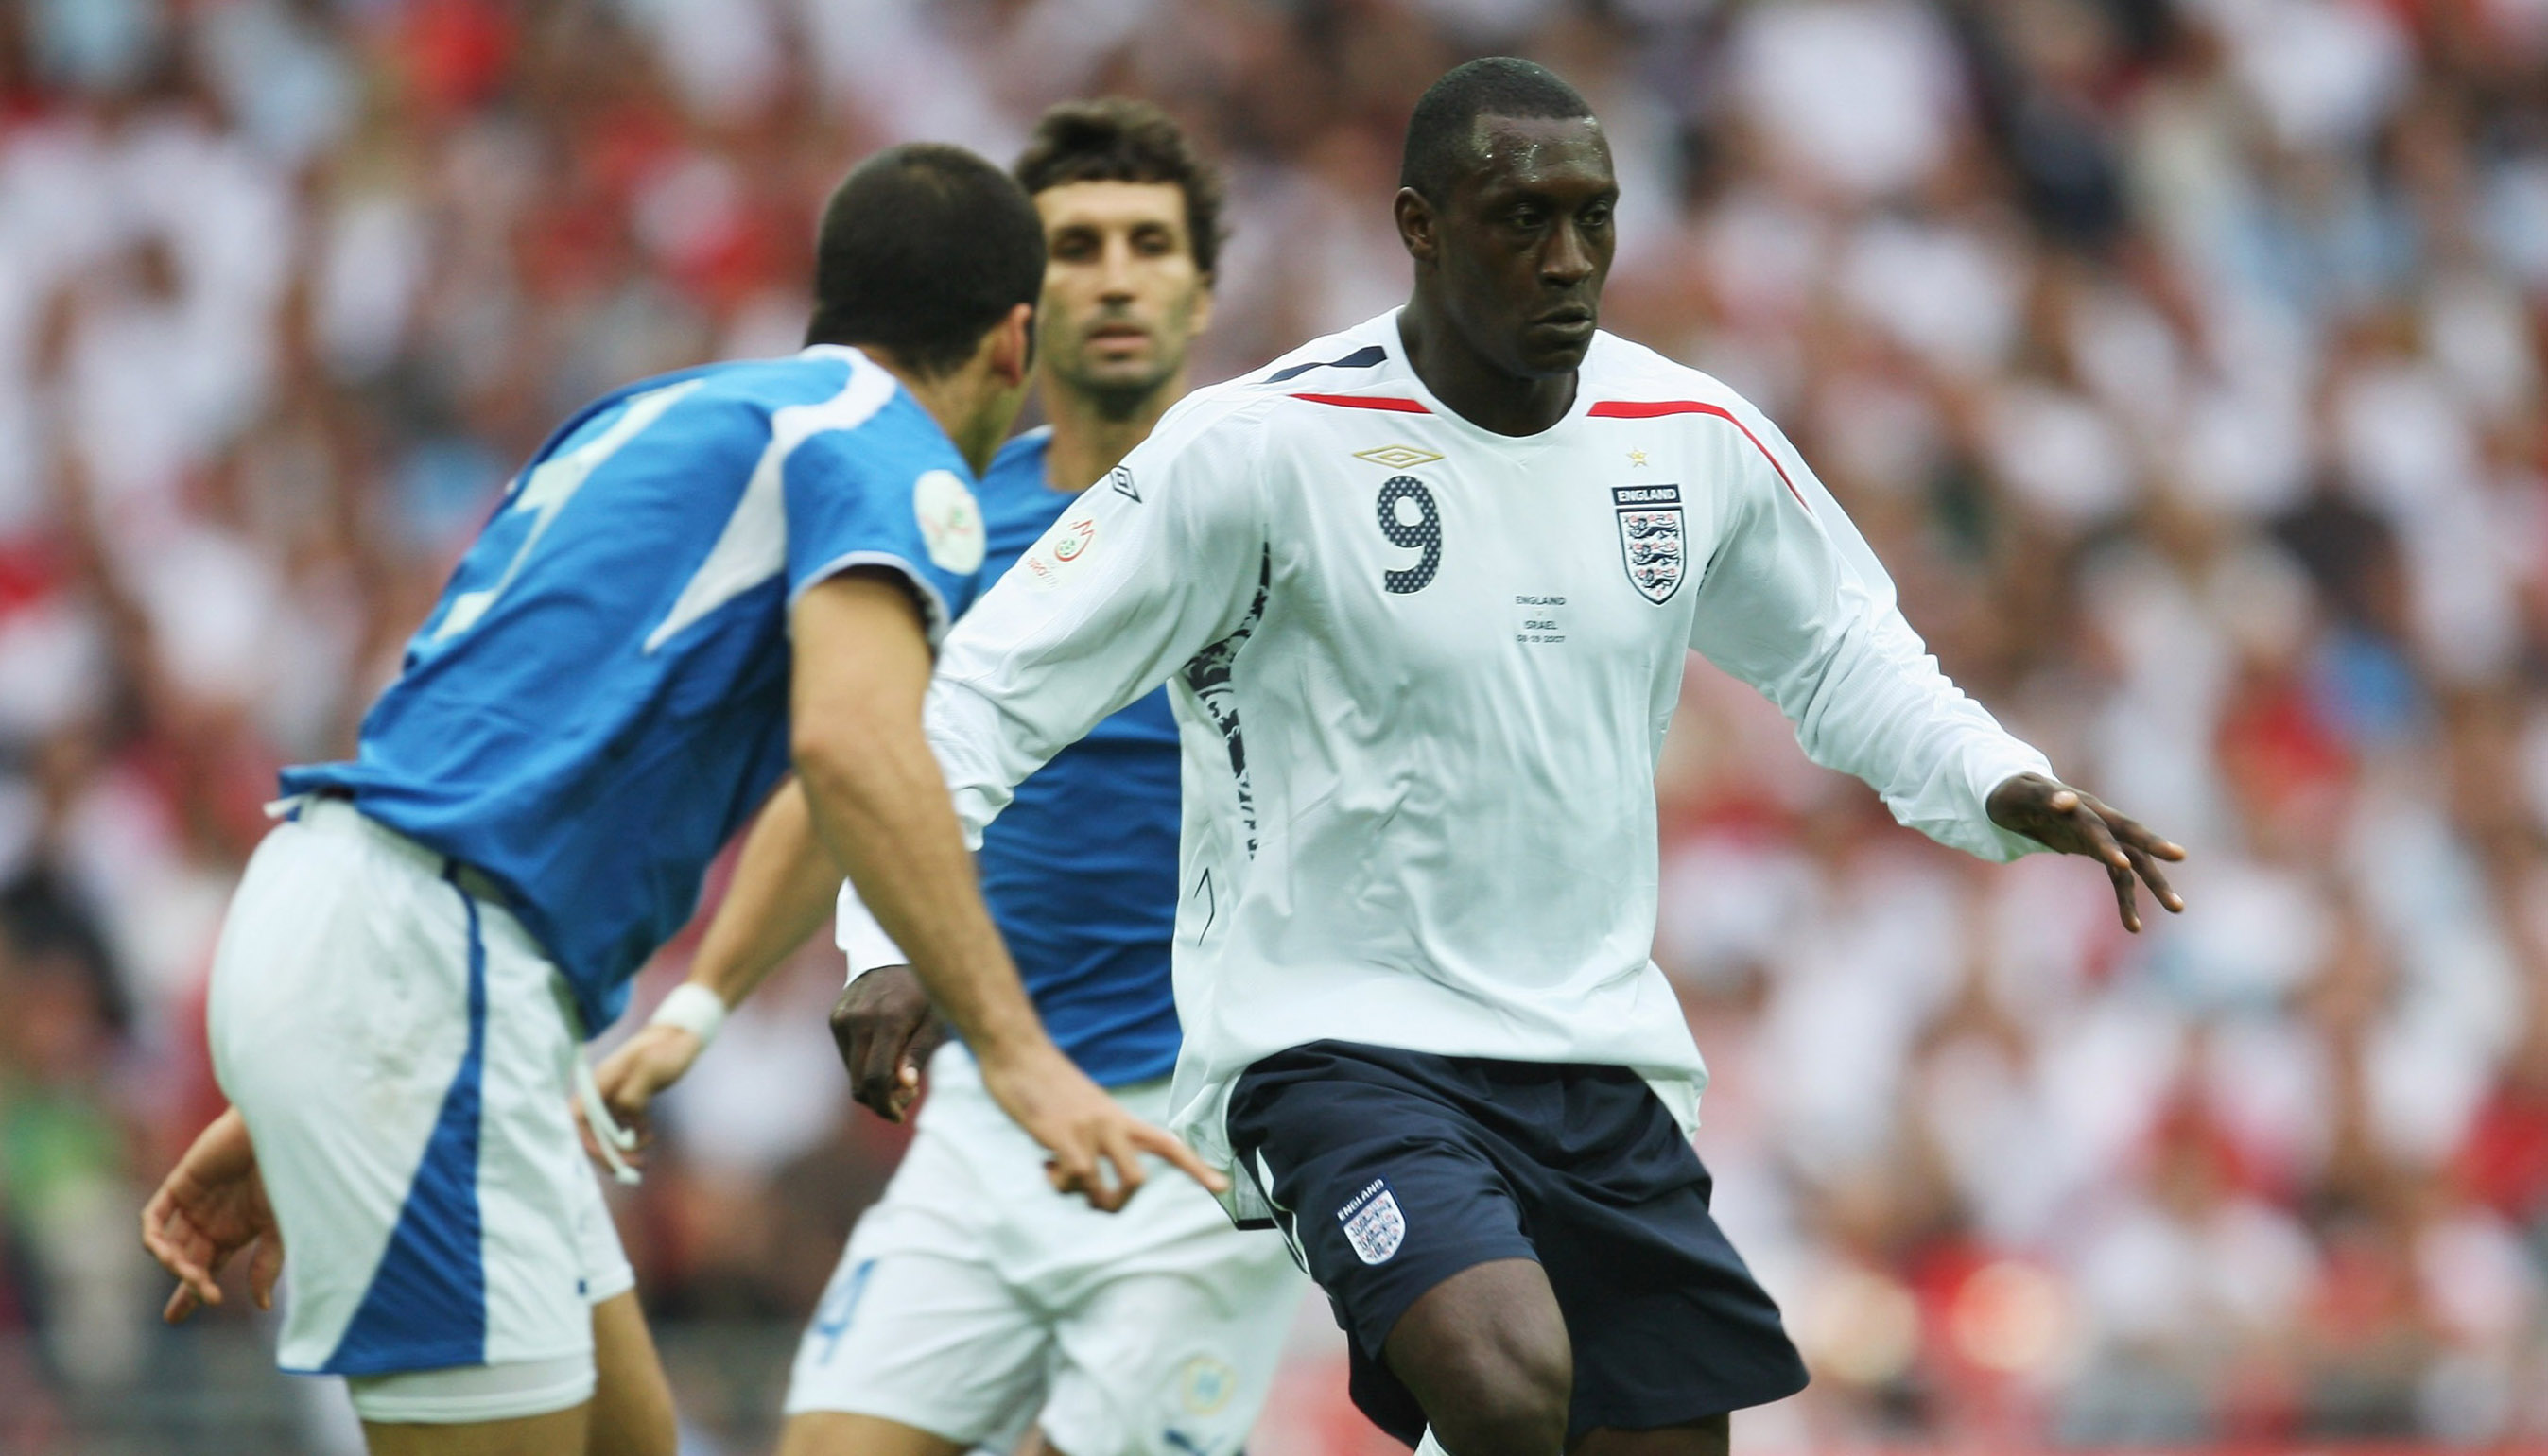 Emile Heskey interview: Former striker on England and his old clubs